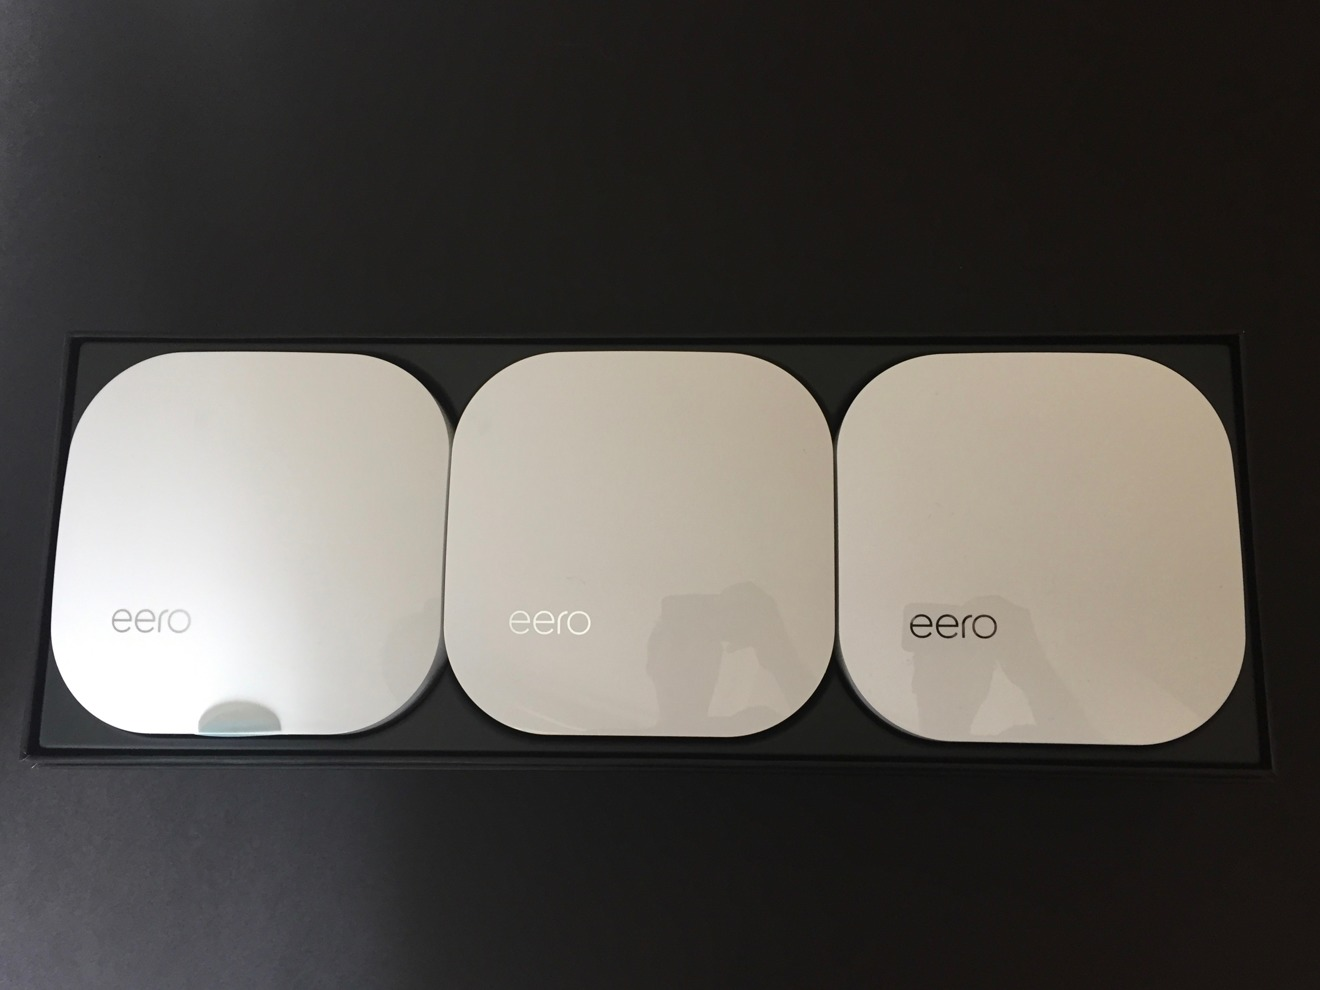 Review: eero Wi-Fi is a solid option for Apple's outgoing AirPort